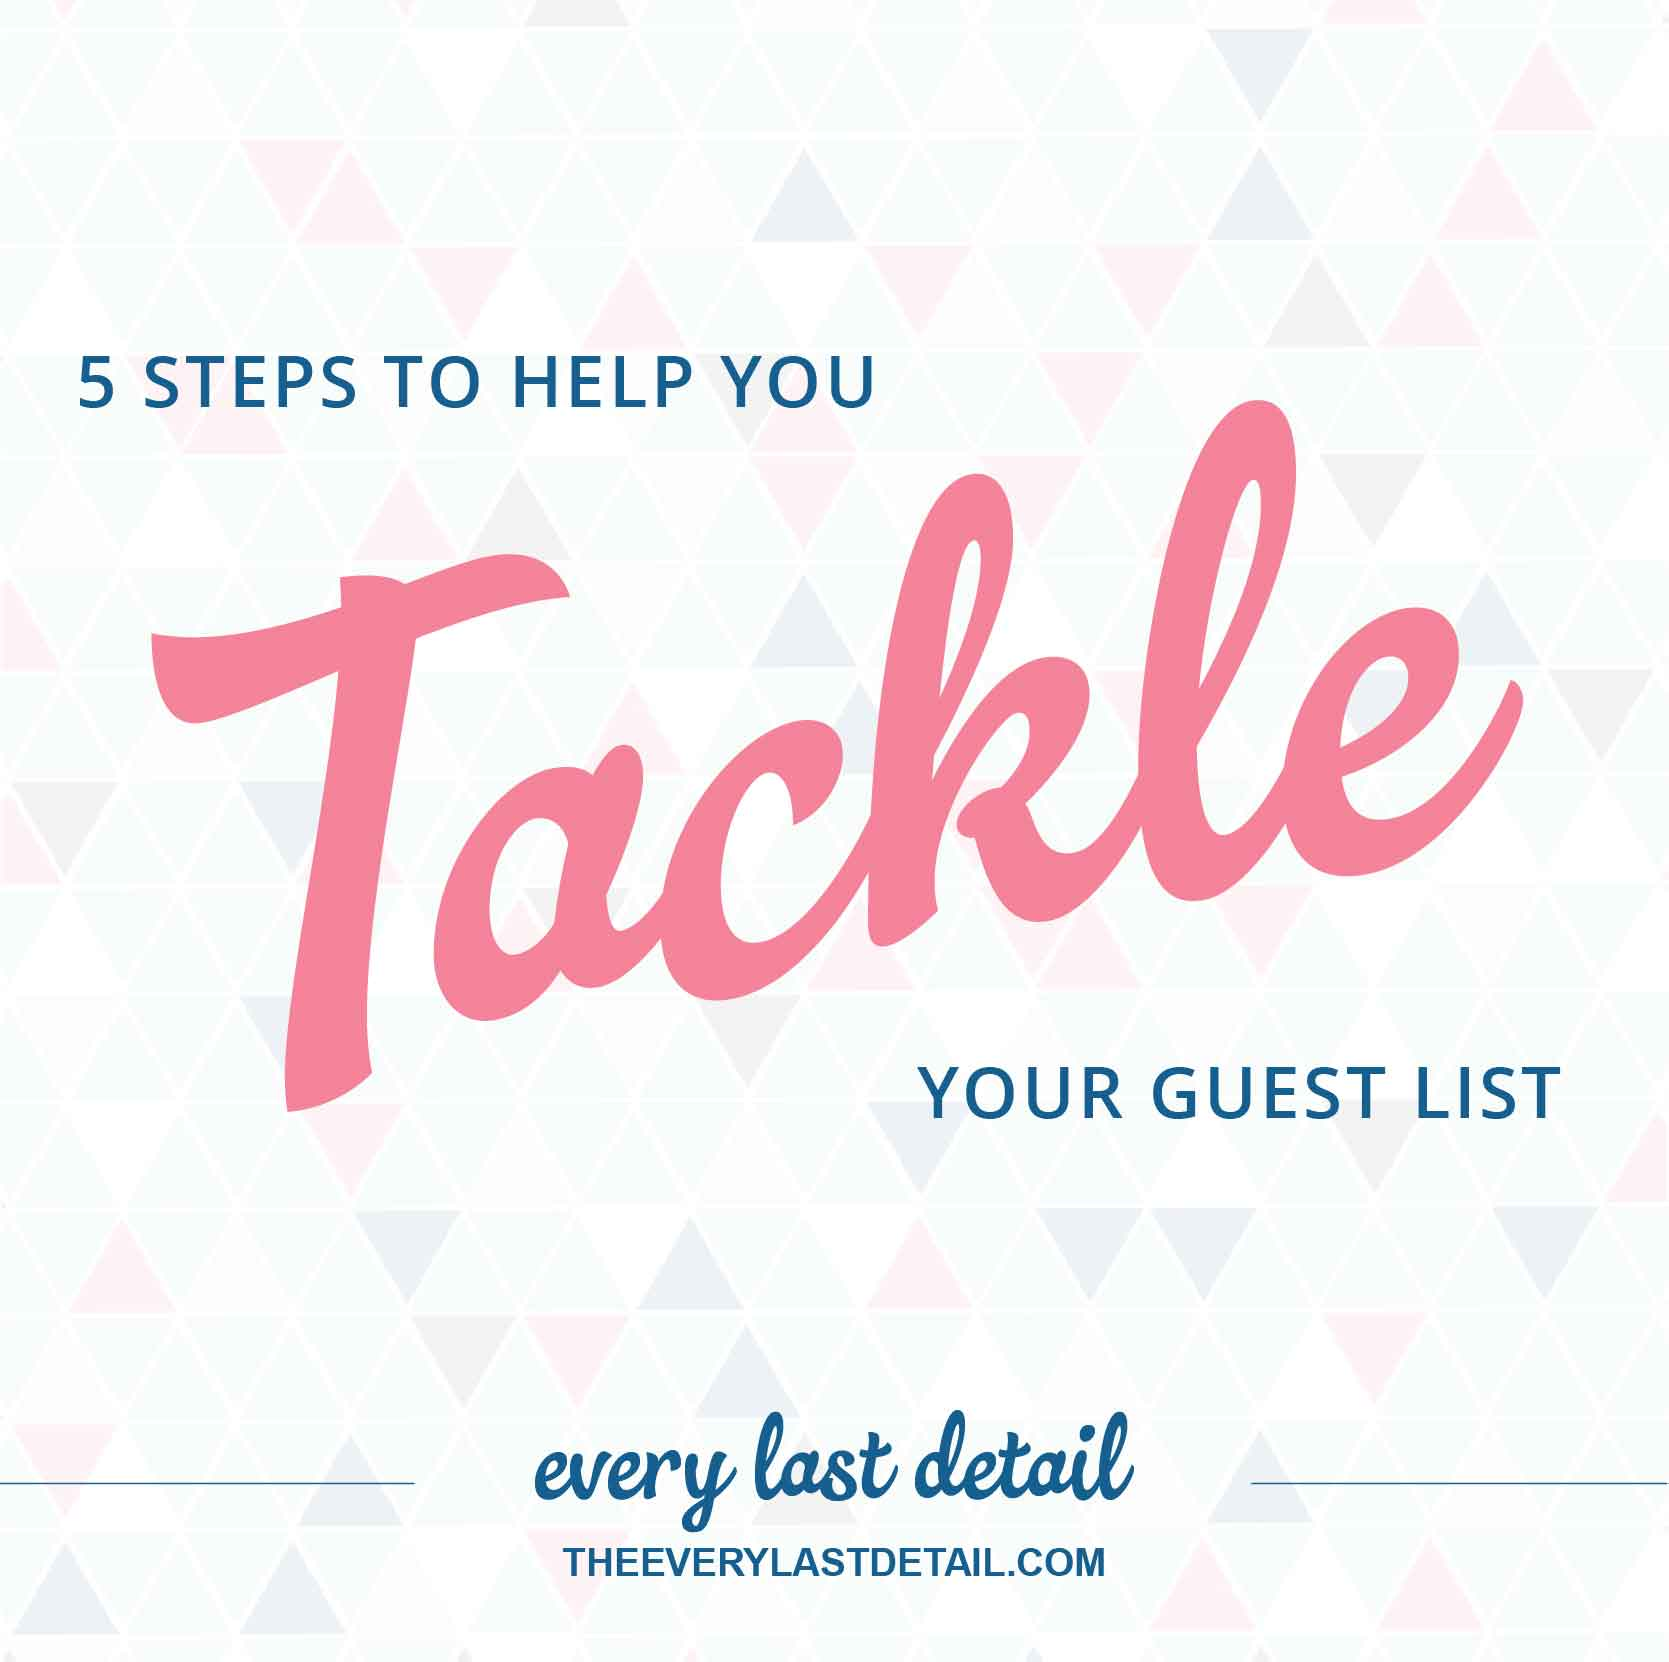 5 Tips To Help You Tackle Your Guest List via TheELD.com